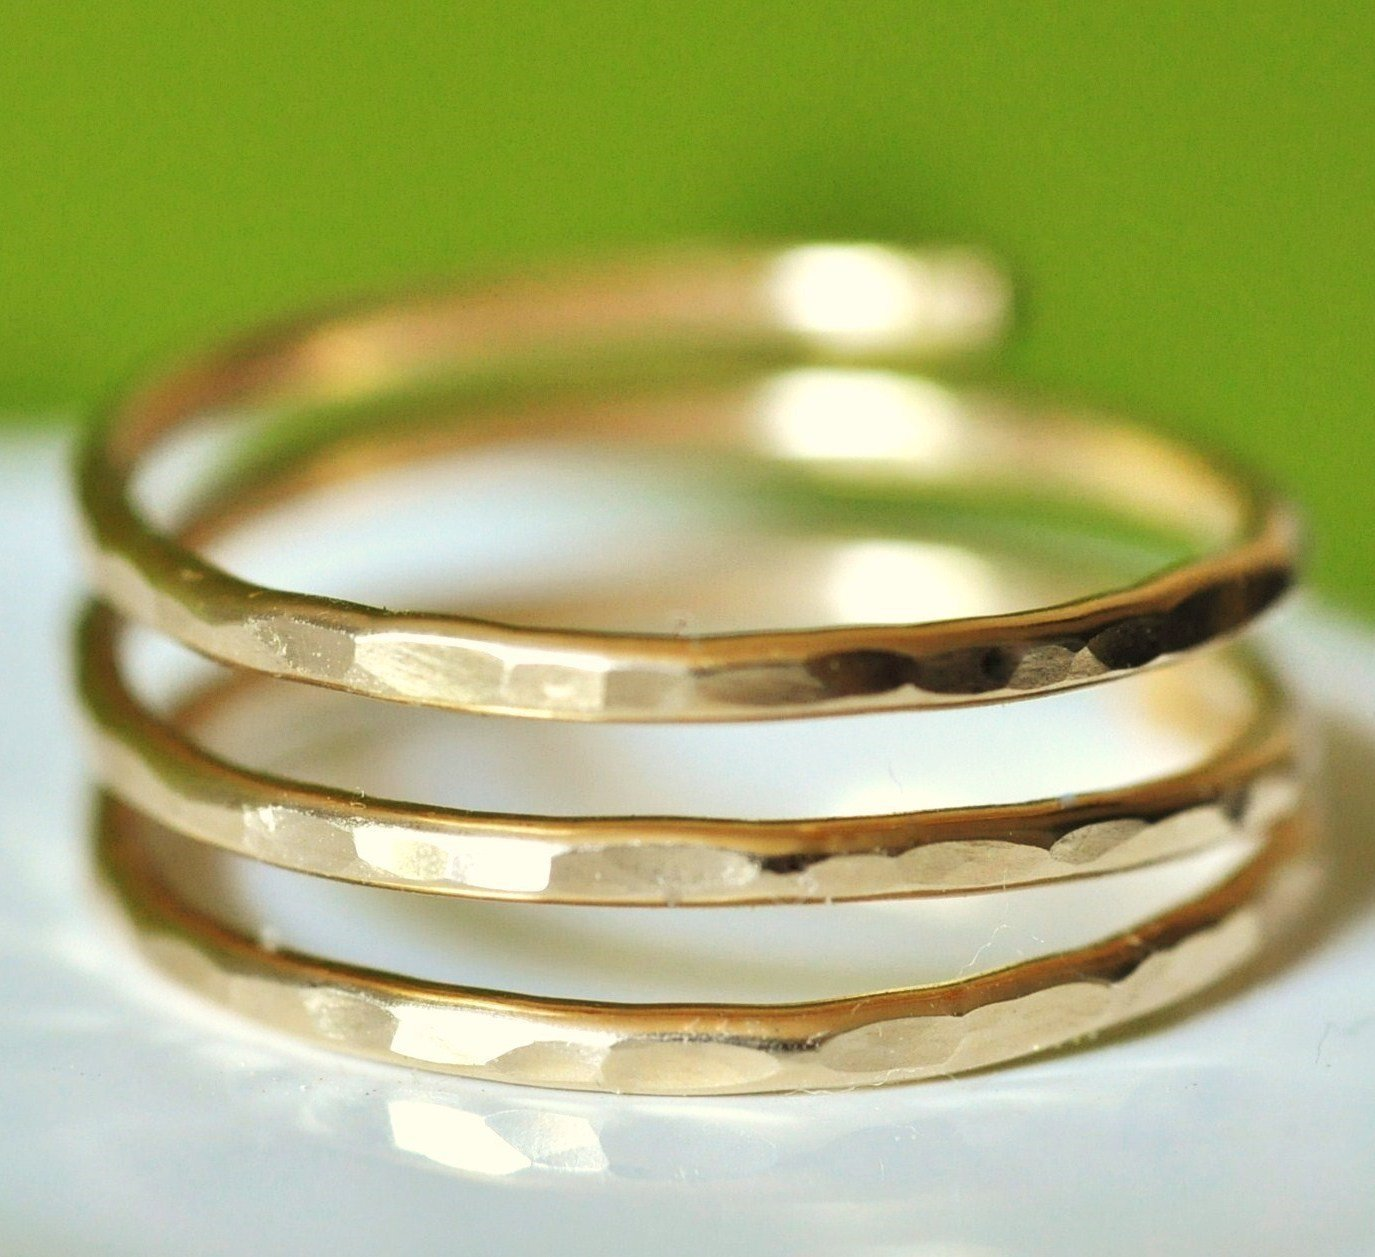 Adjustable hammered wire wrap coil ring, thumb ring, pregnancy ring - 14k gold filled